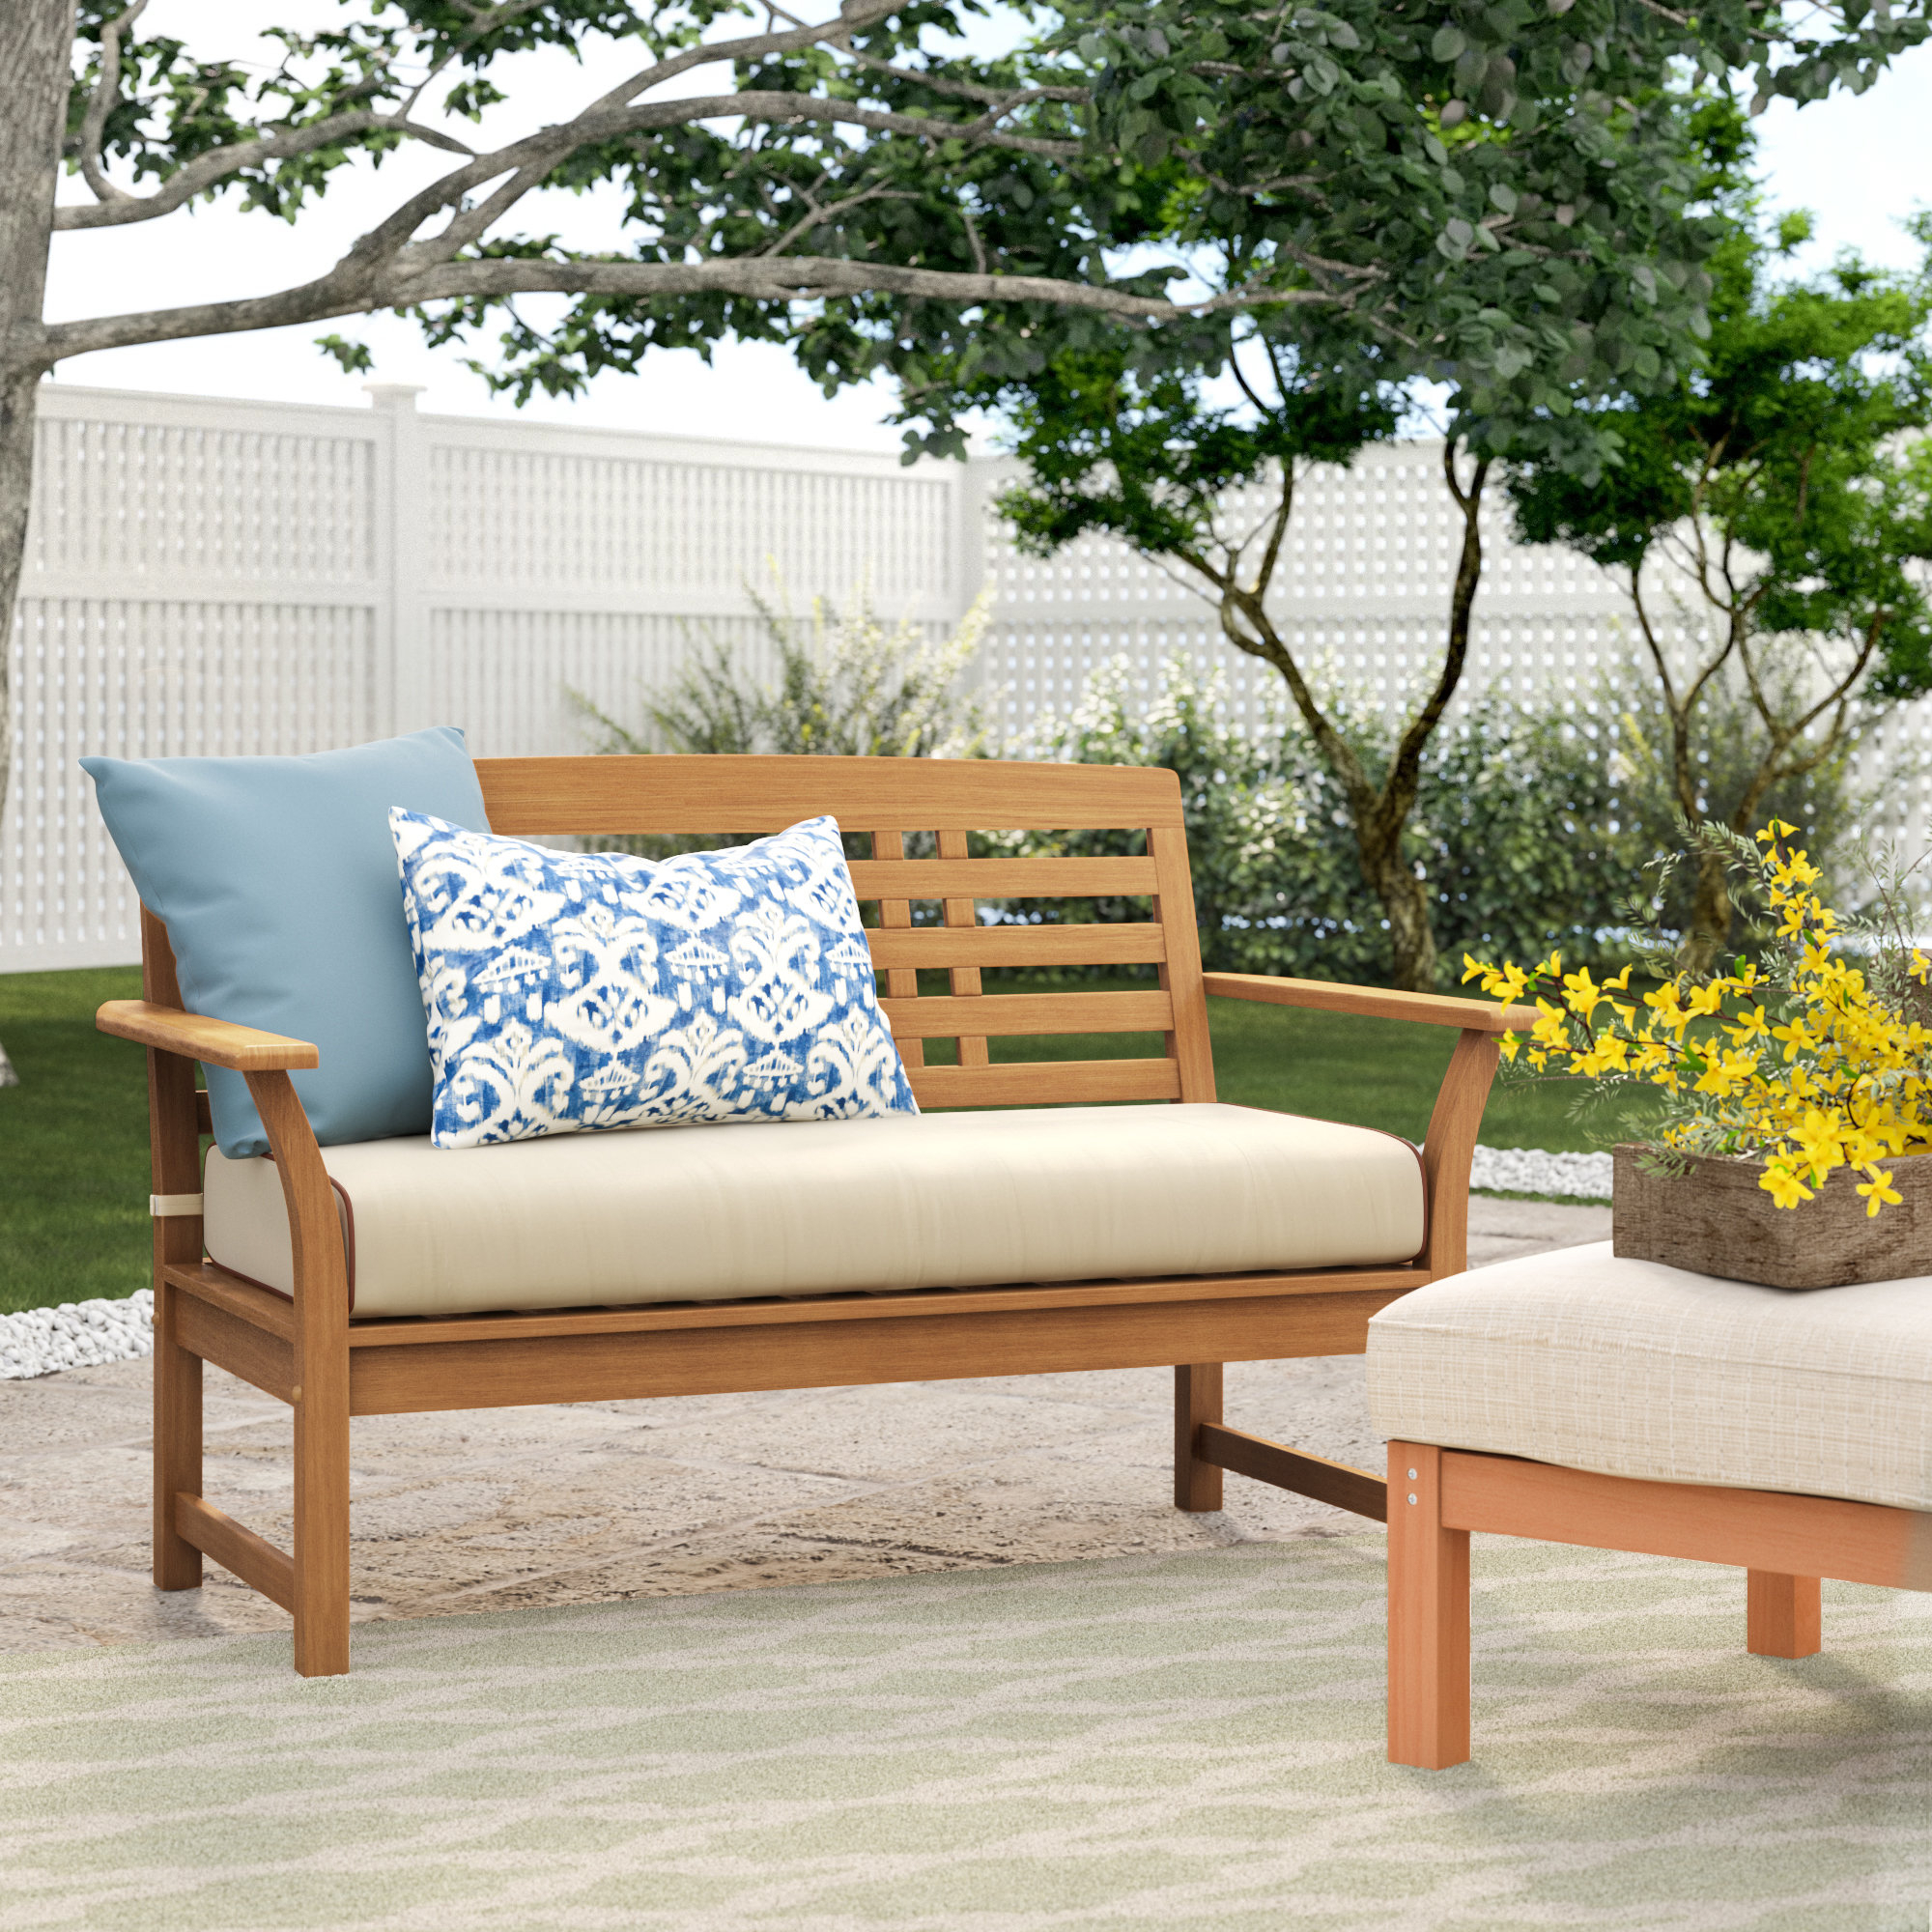 Mansfield Teak Loveseats With Cushion Regarding Popular Calila Teak Loveseat With Cushion (View 2 of 20)